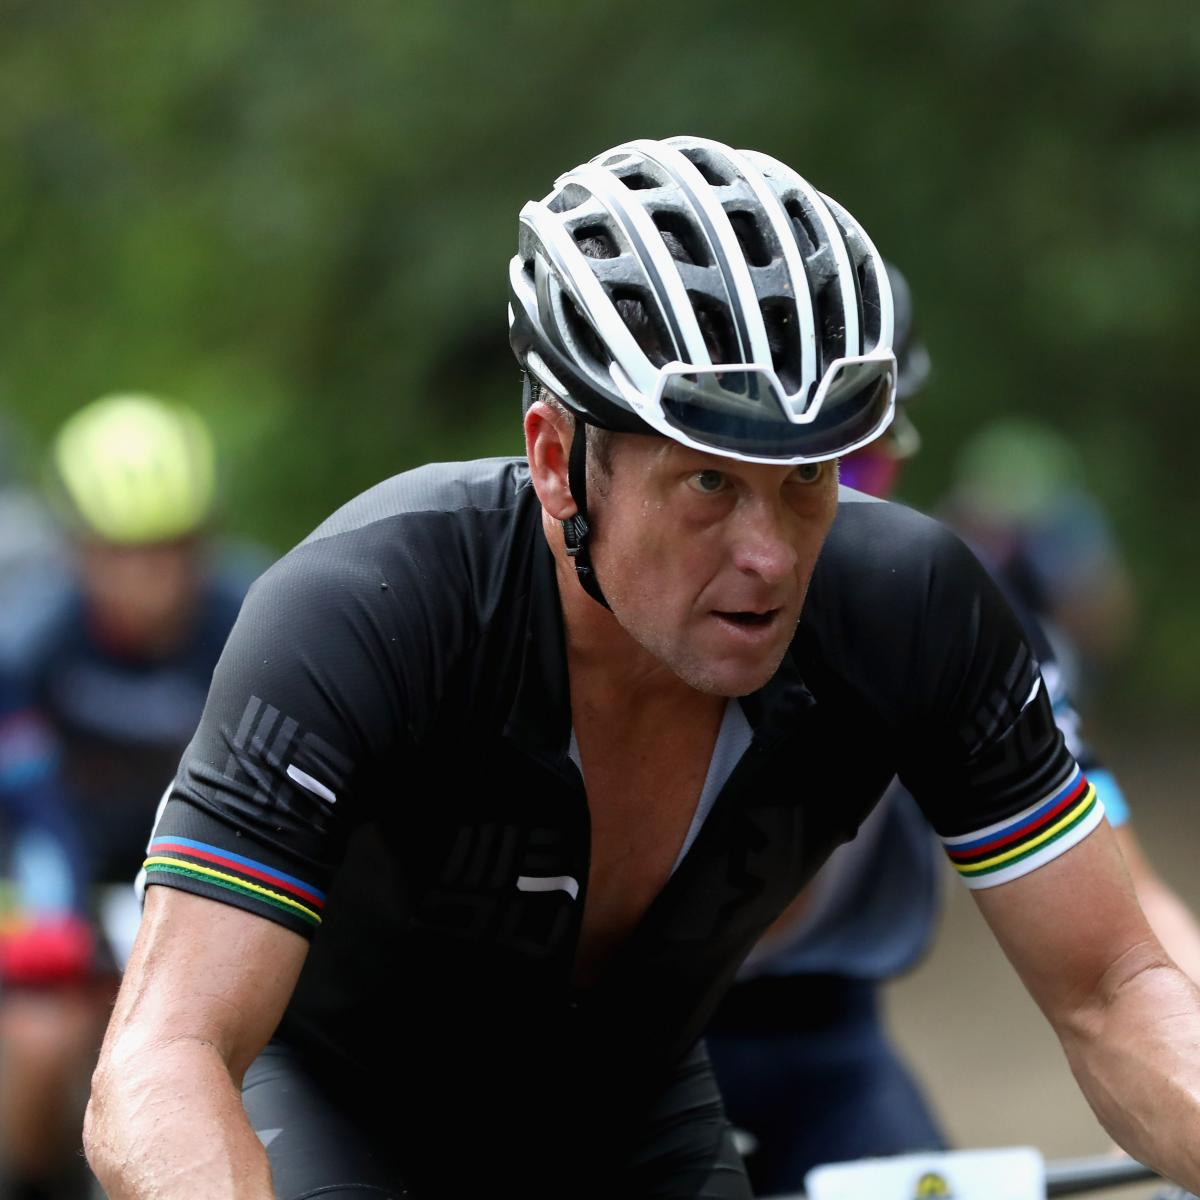 Lance Armstrong 'wouldn't change a thing' about doping